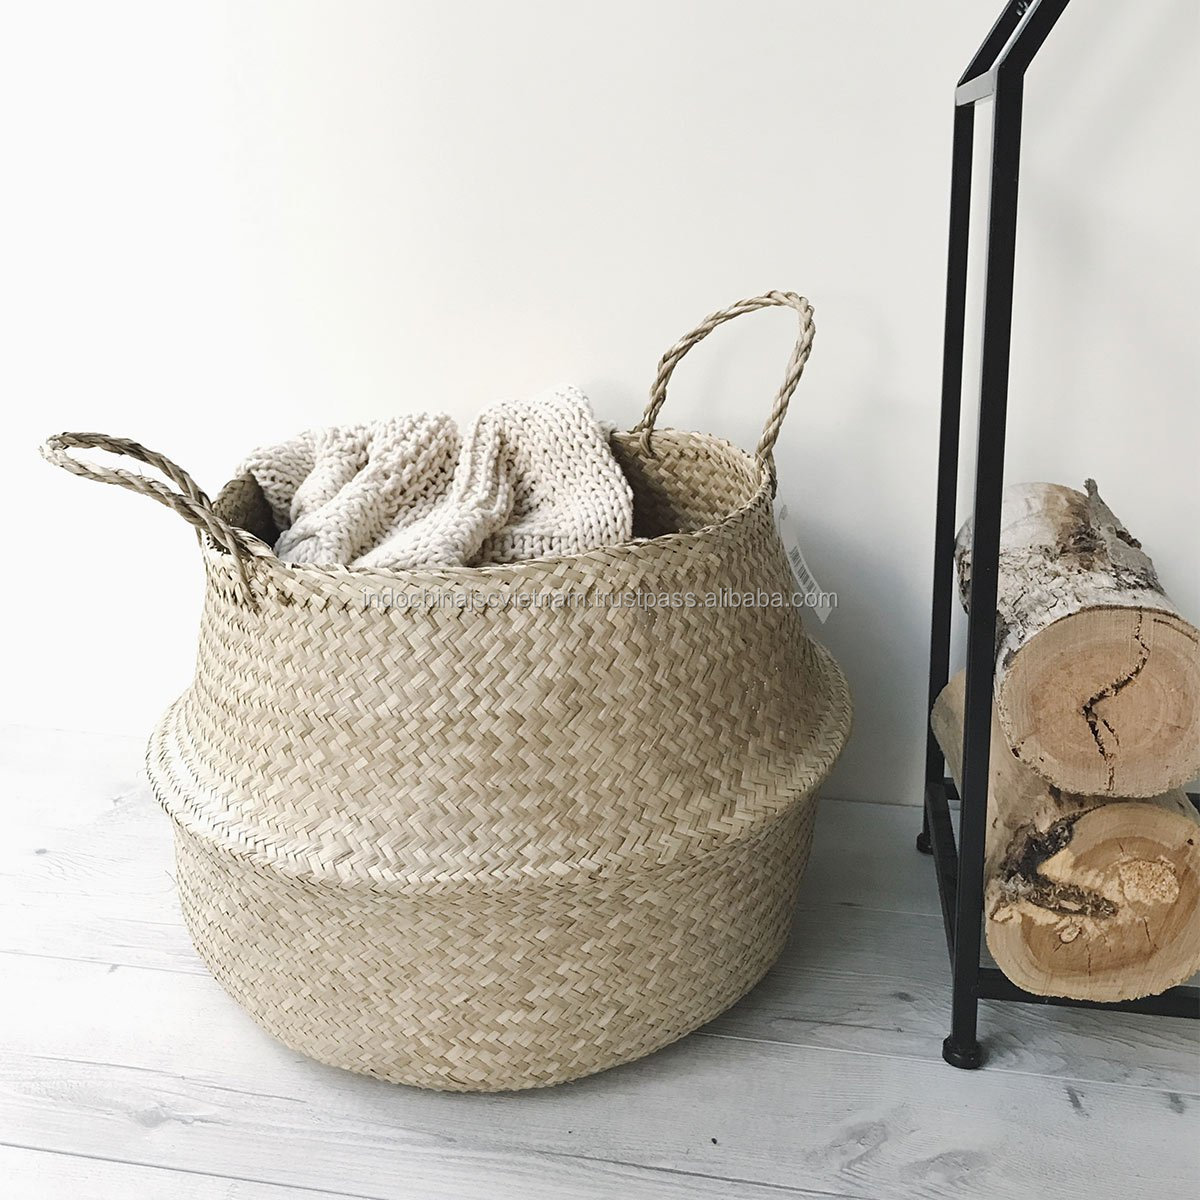 seagrass belly basket.jpg